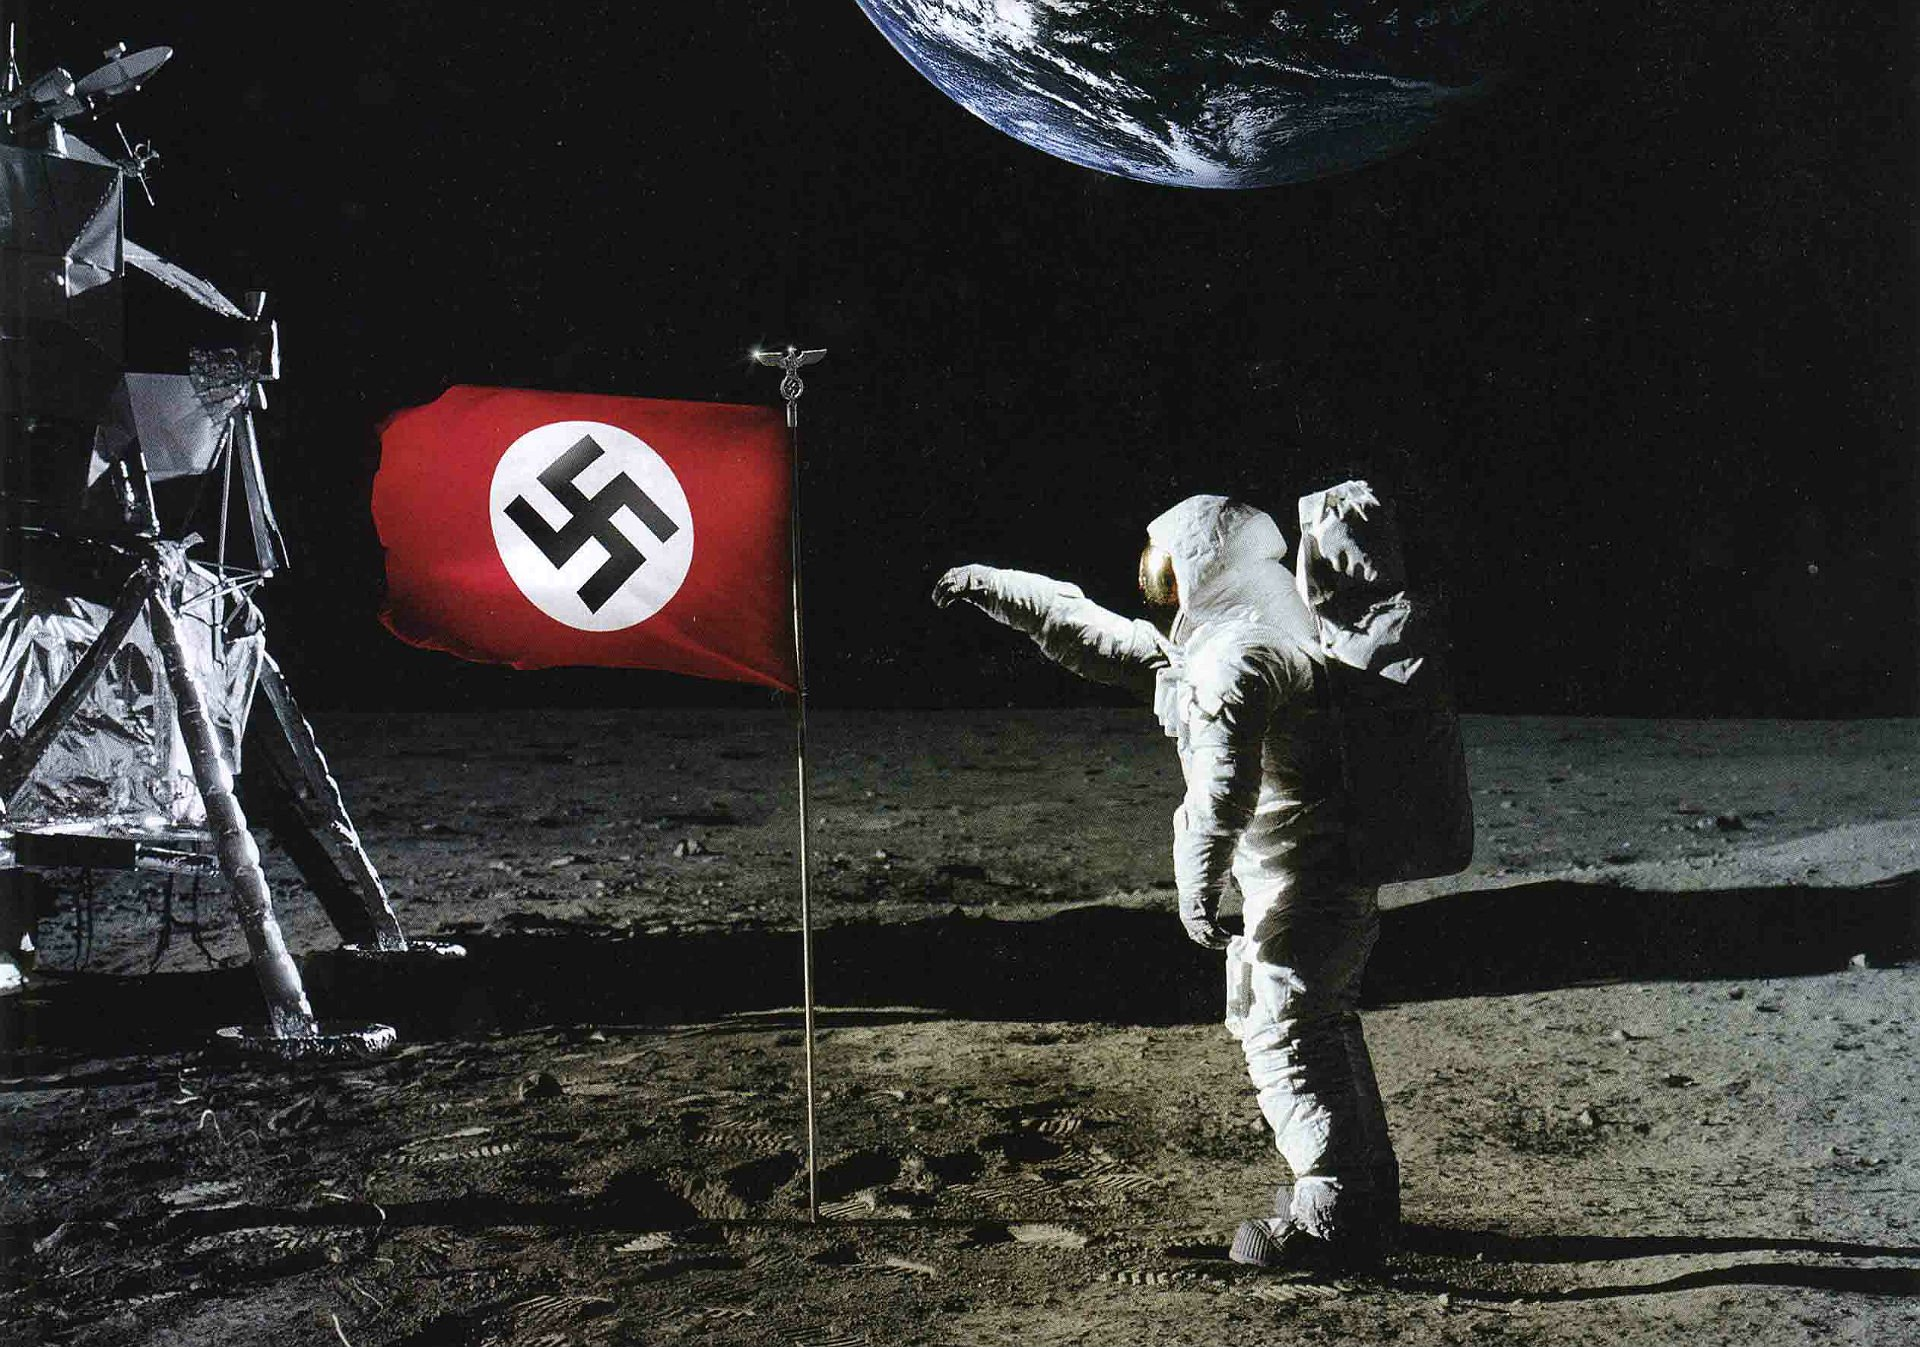 germany nazi on moon landing images - photo #36